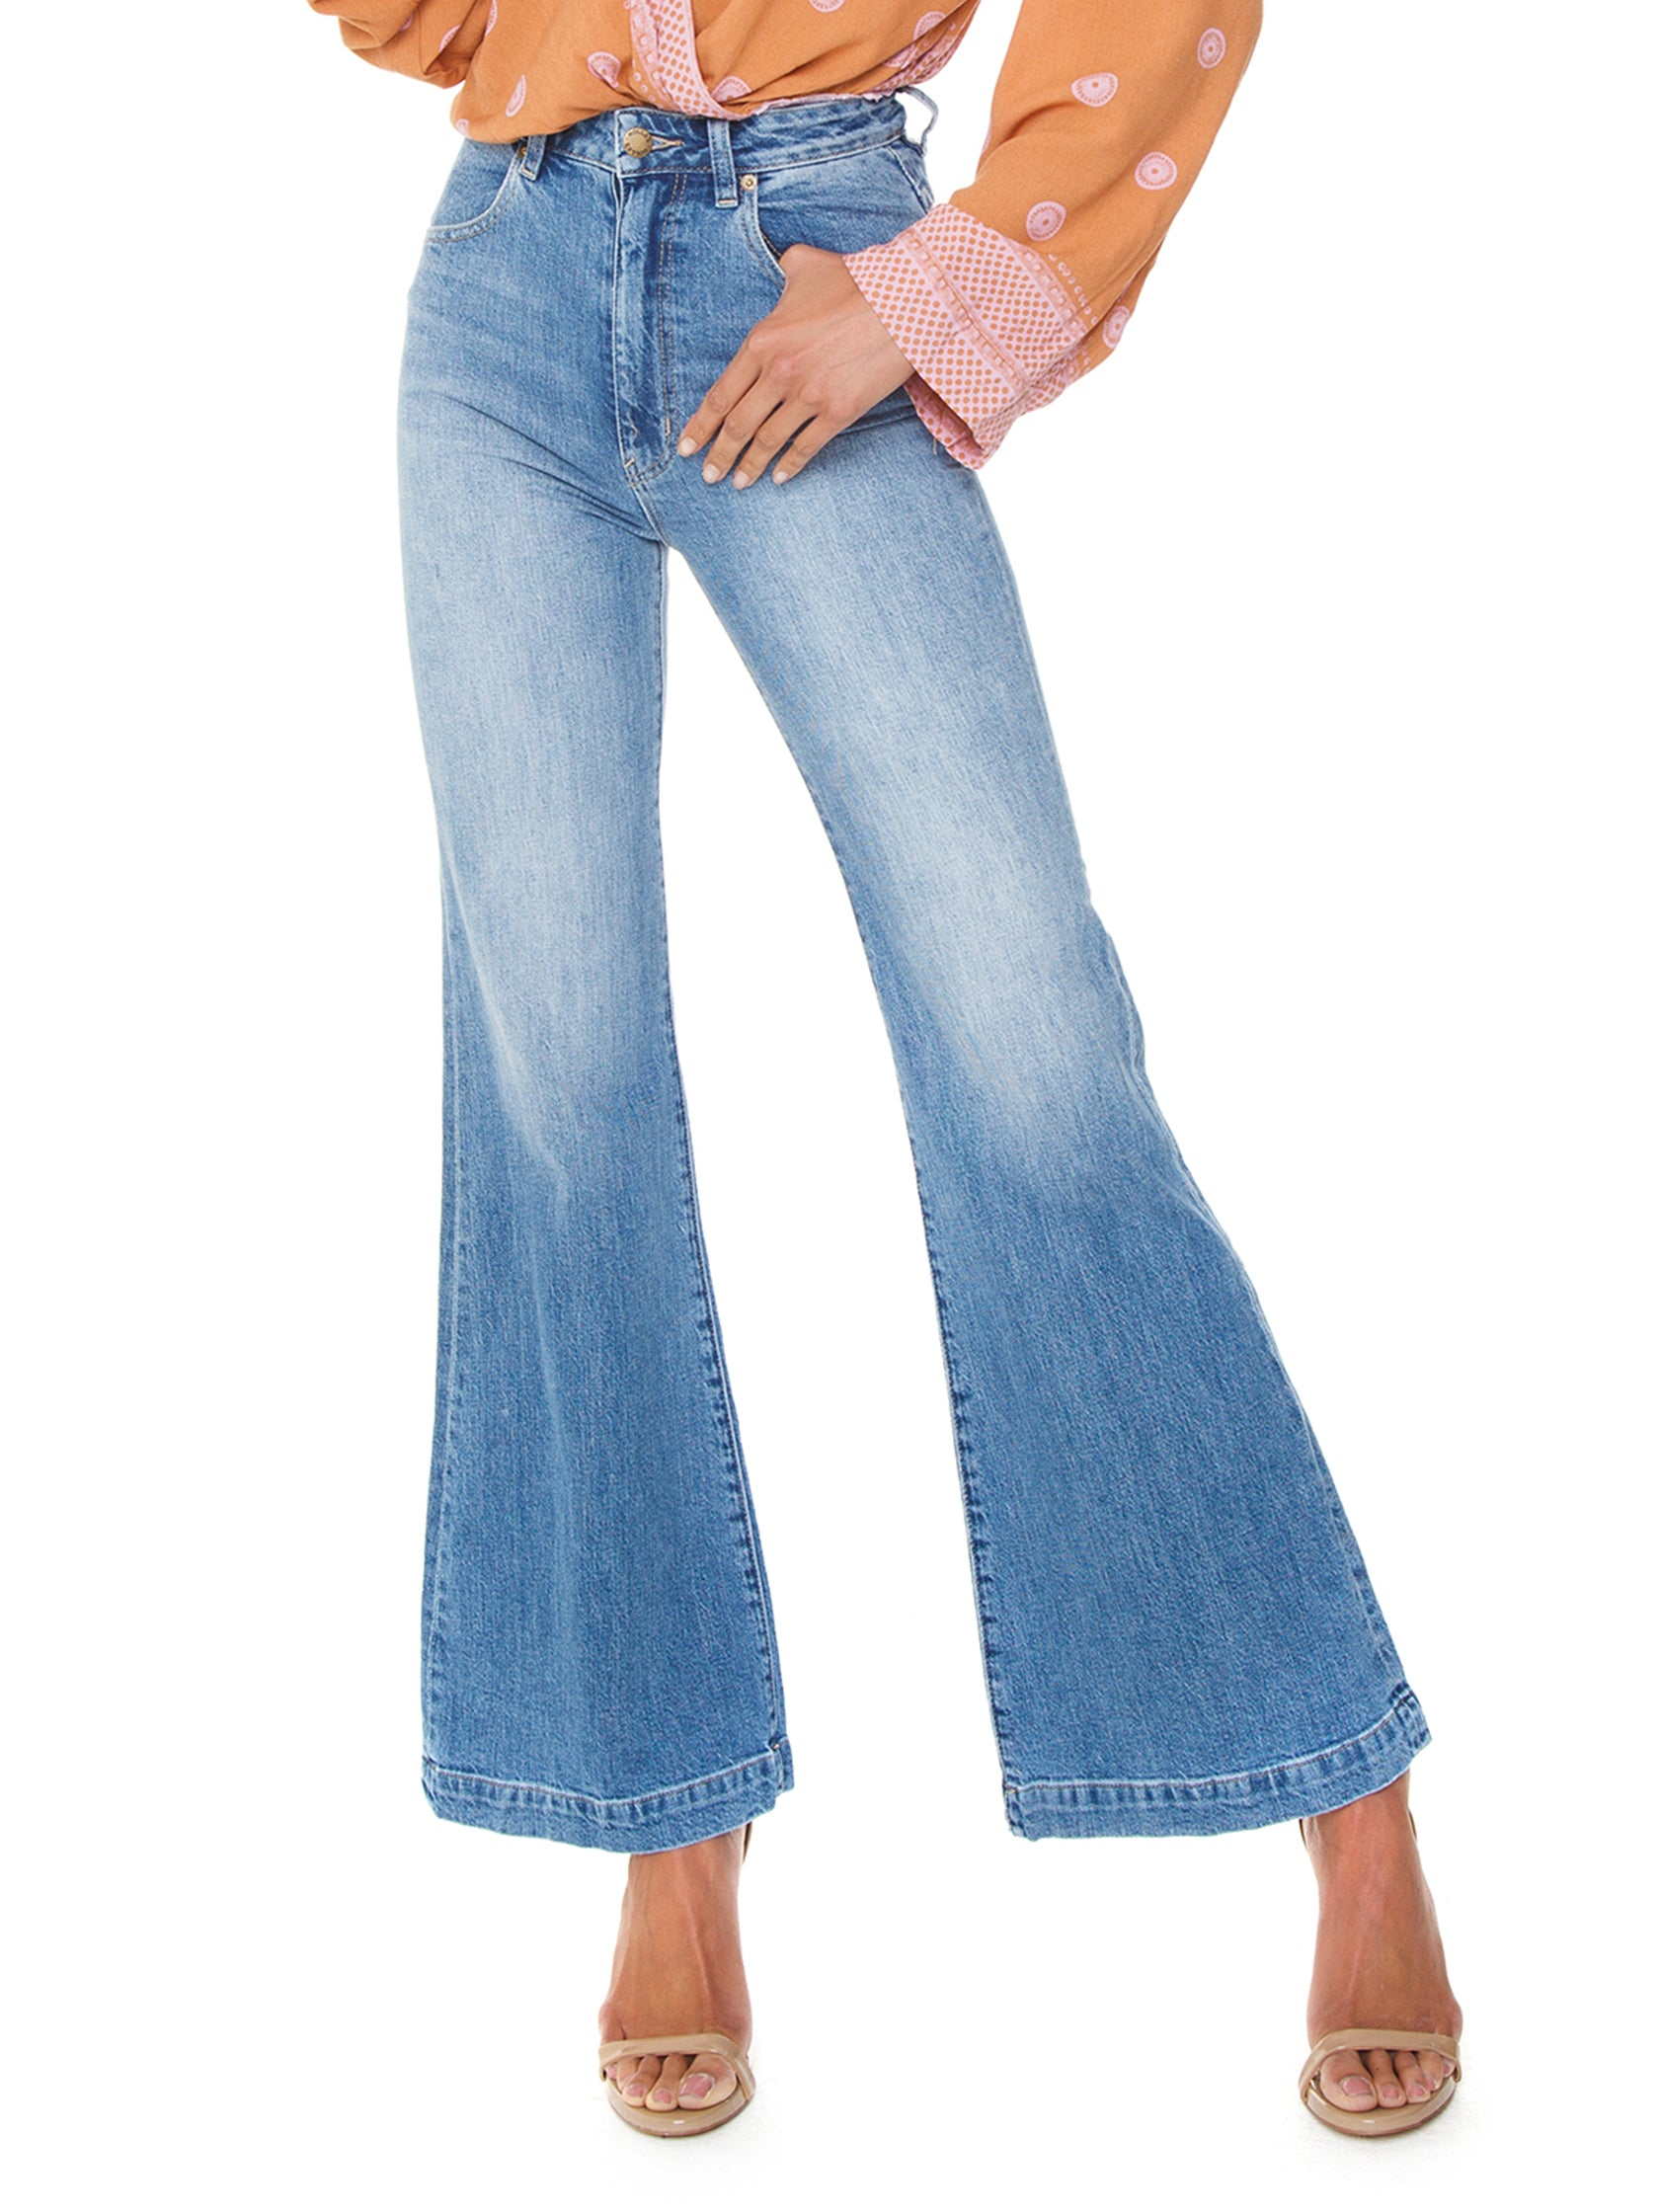 Woman wearing a denim rental from ROLLAS called Eastcoast Flare